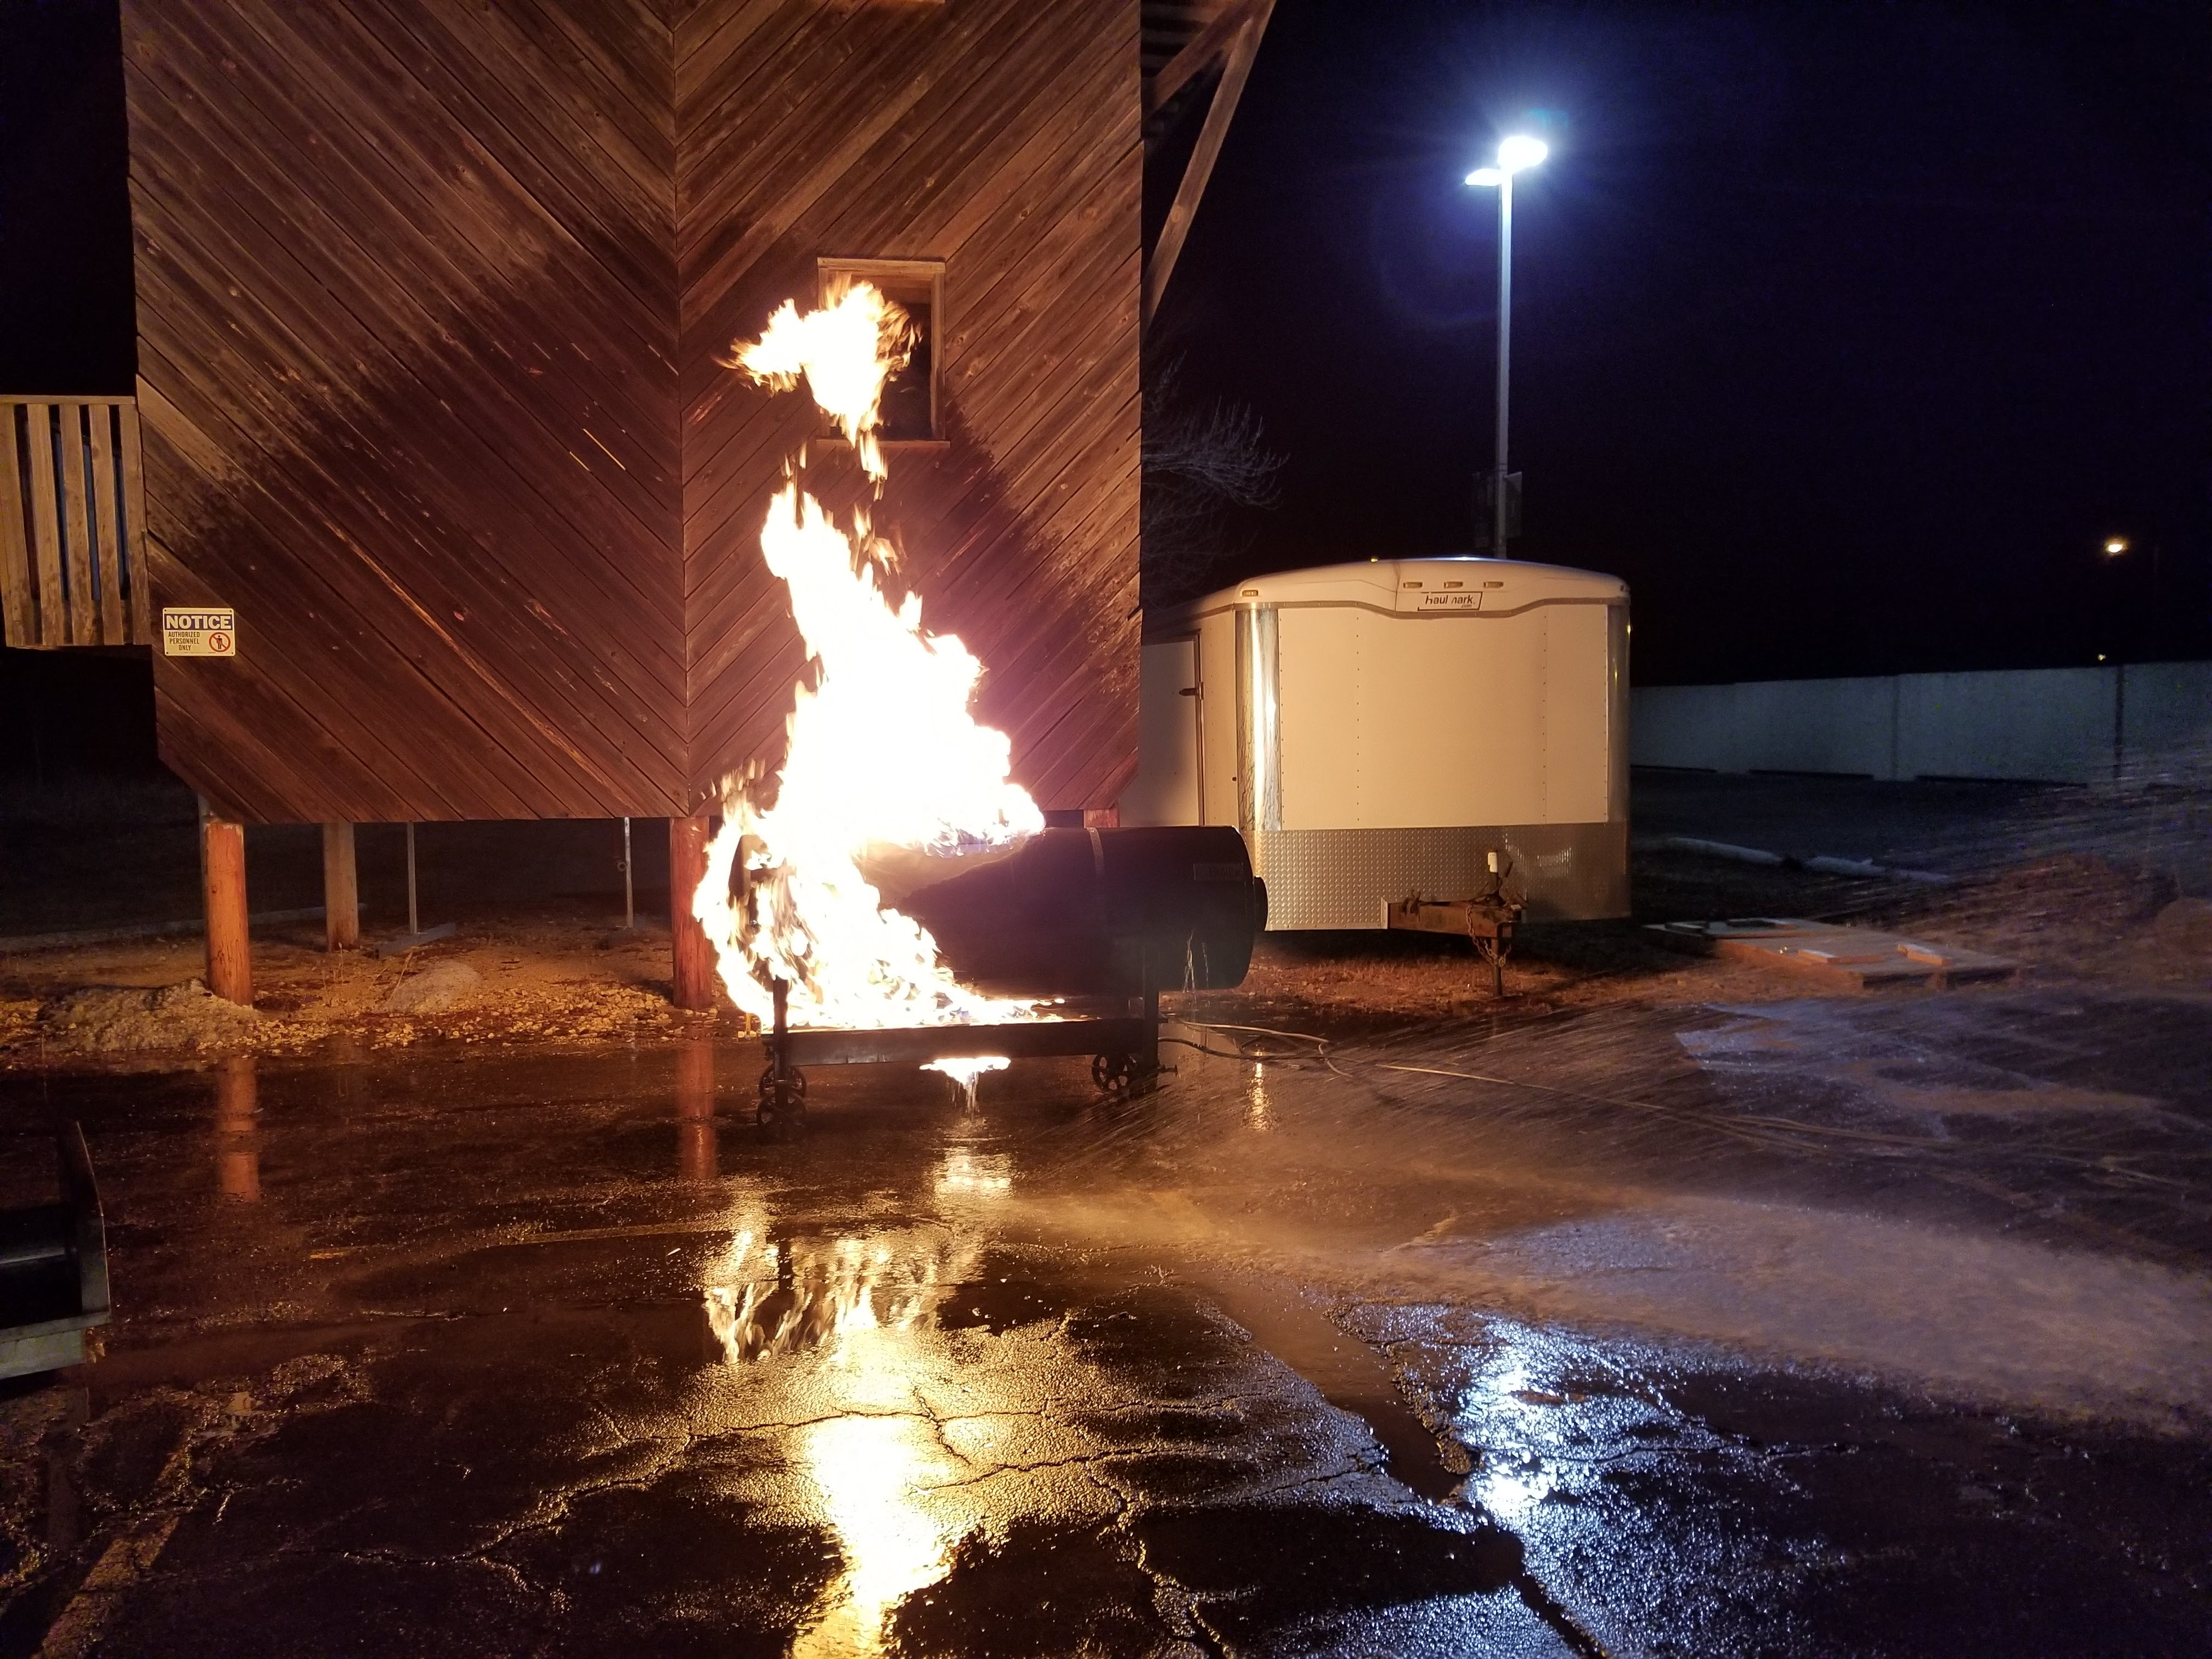 Propane tank on fire for fire simulation